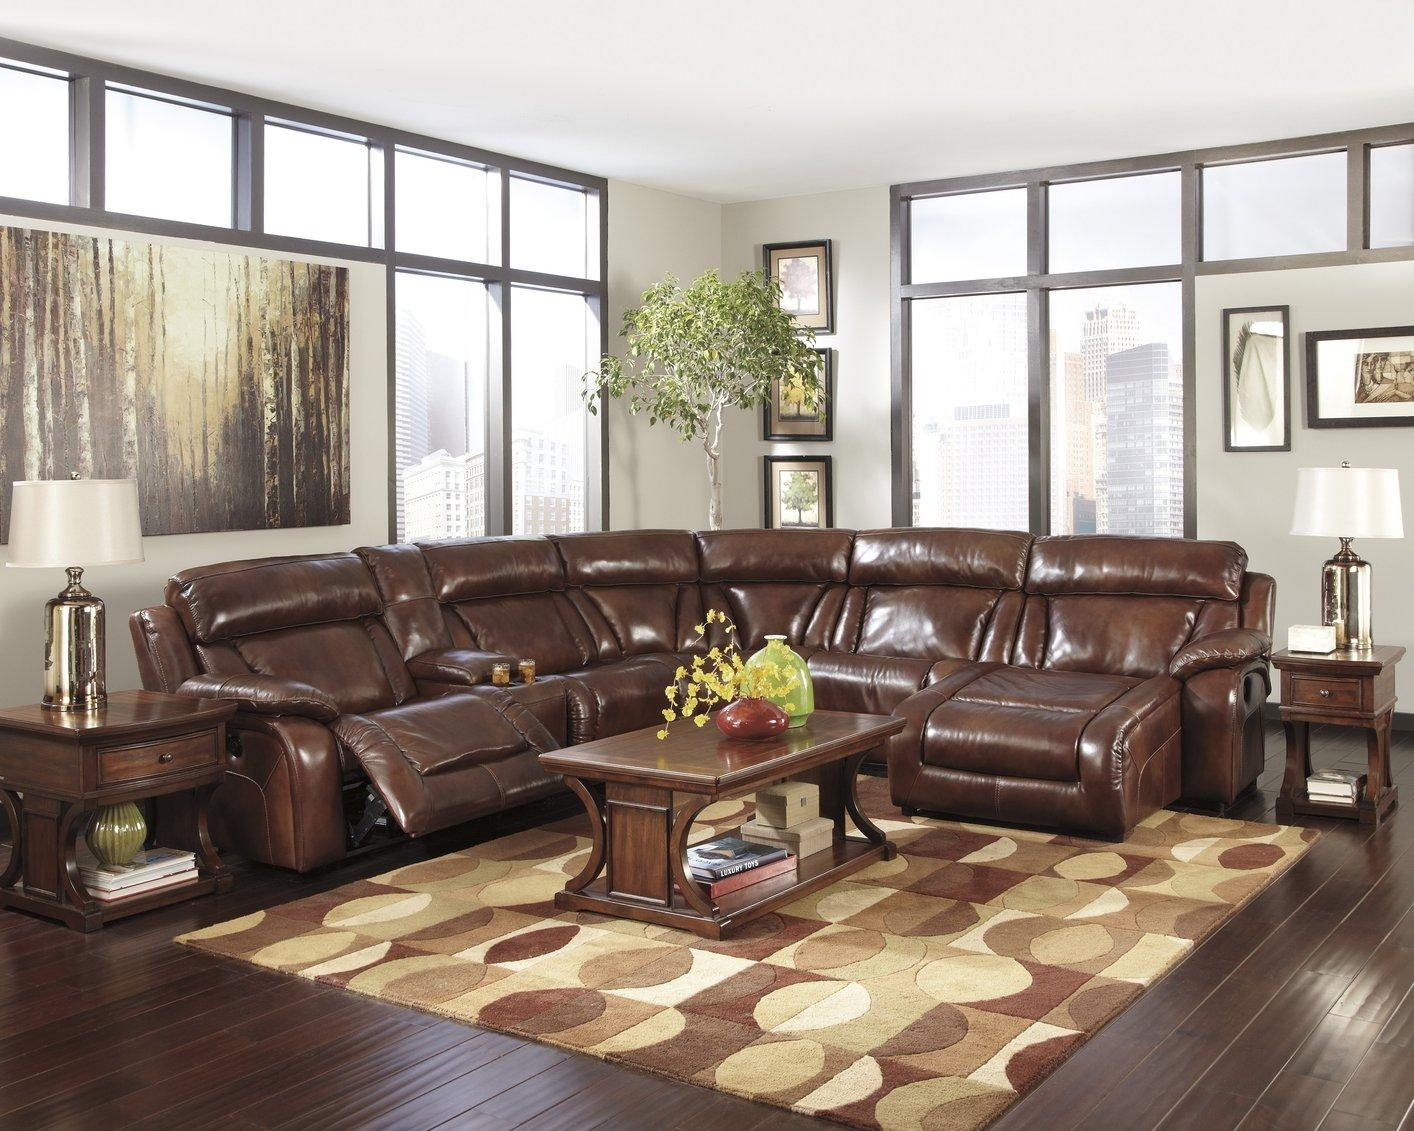 Sectional Sofa Clearance: The Best Way To Get High Quality Sofa In Throughout High End Leather Sectional Sofa (View 8 of 15)